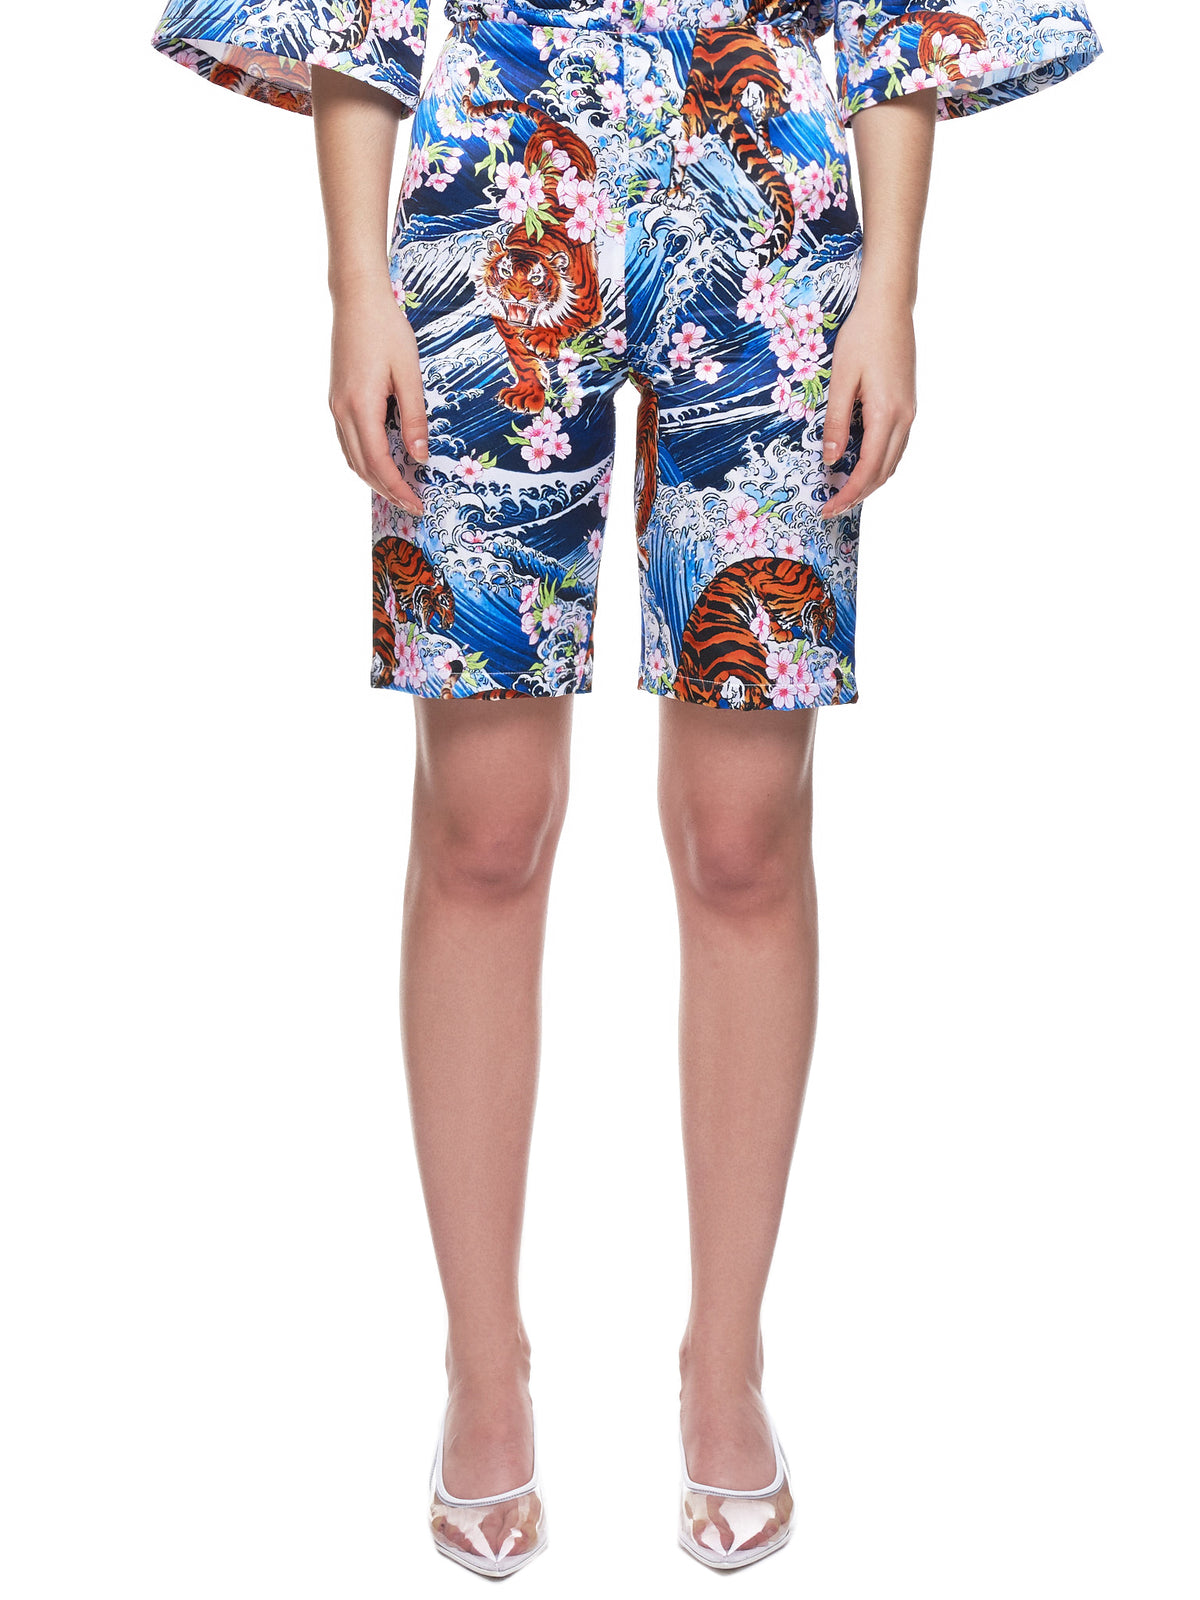 Tiger Shorts (70C-TIGER-WAVE)